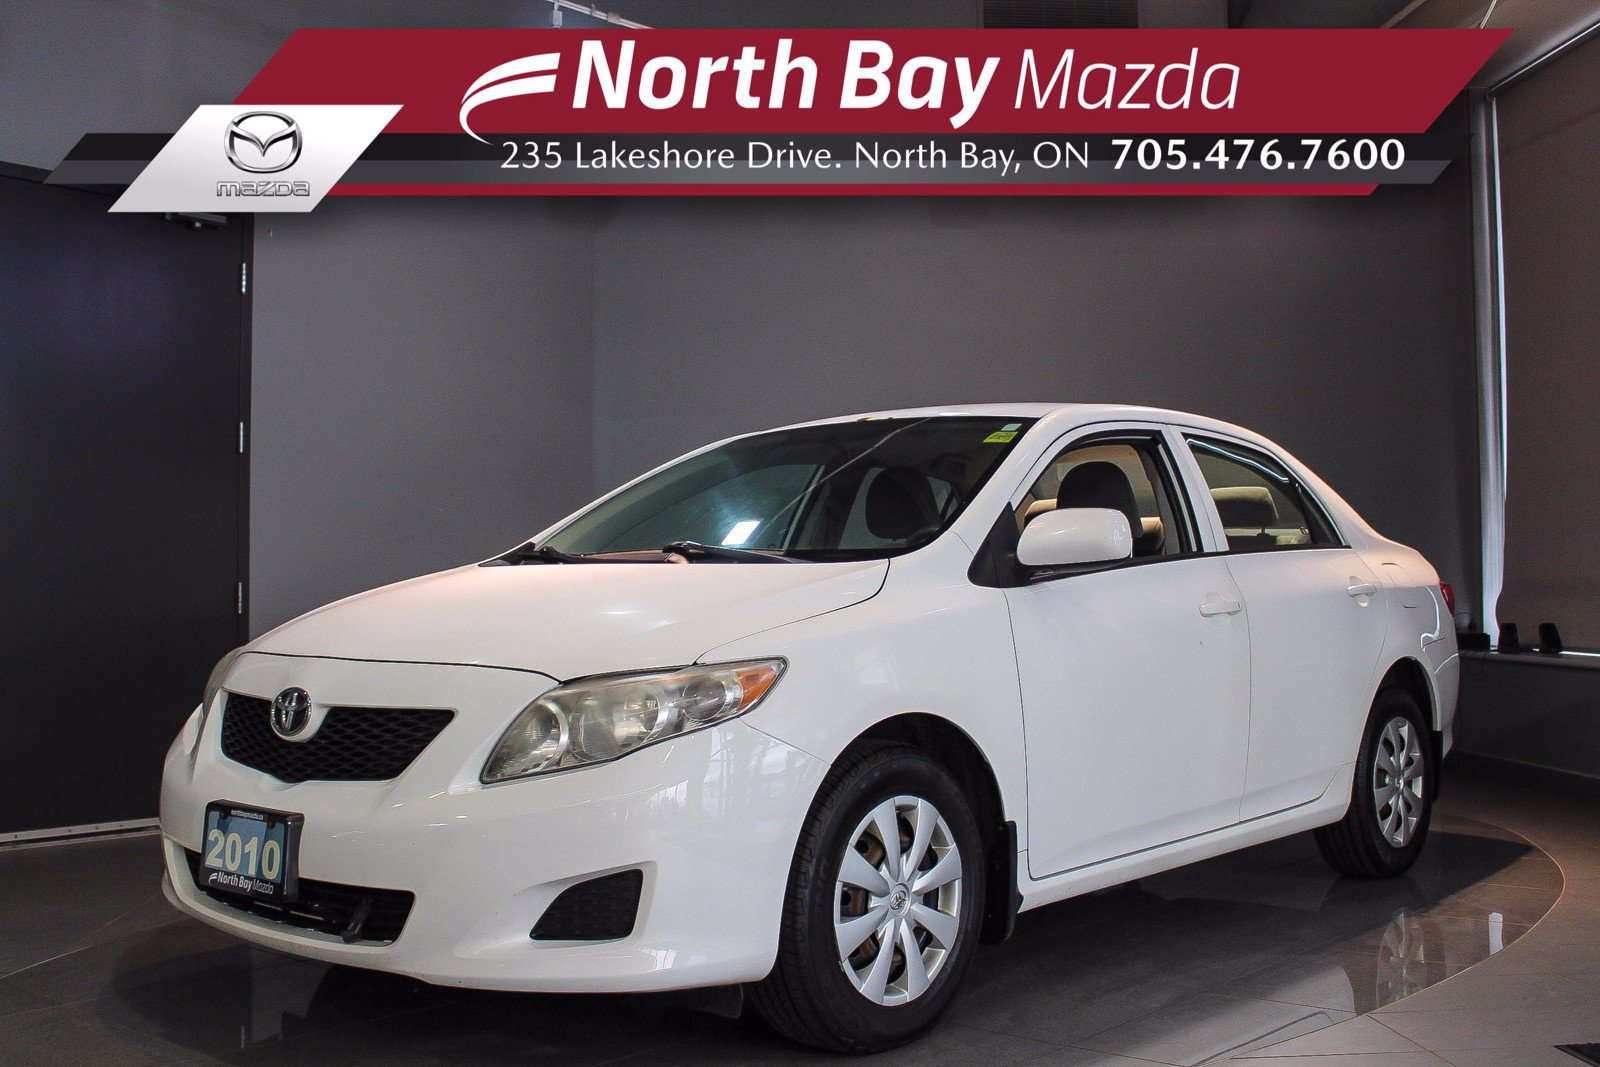 Pre-Owned 2010 Toyota Corolla CE- Click Here! Test Drive Appts Available!